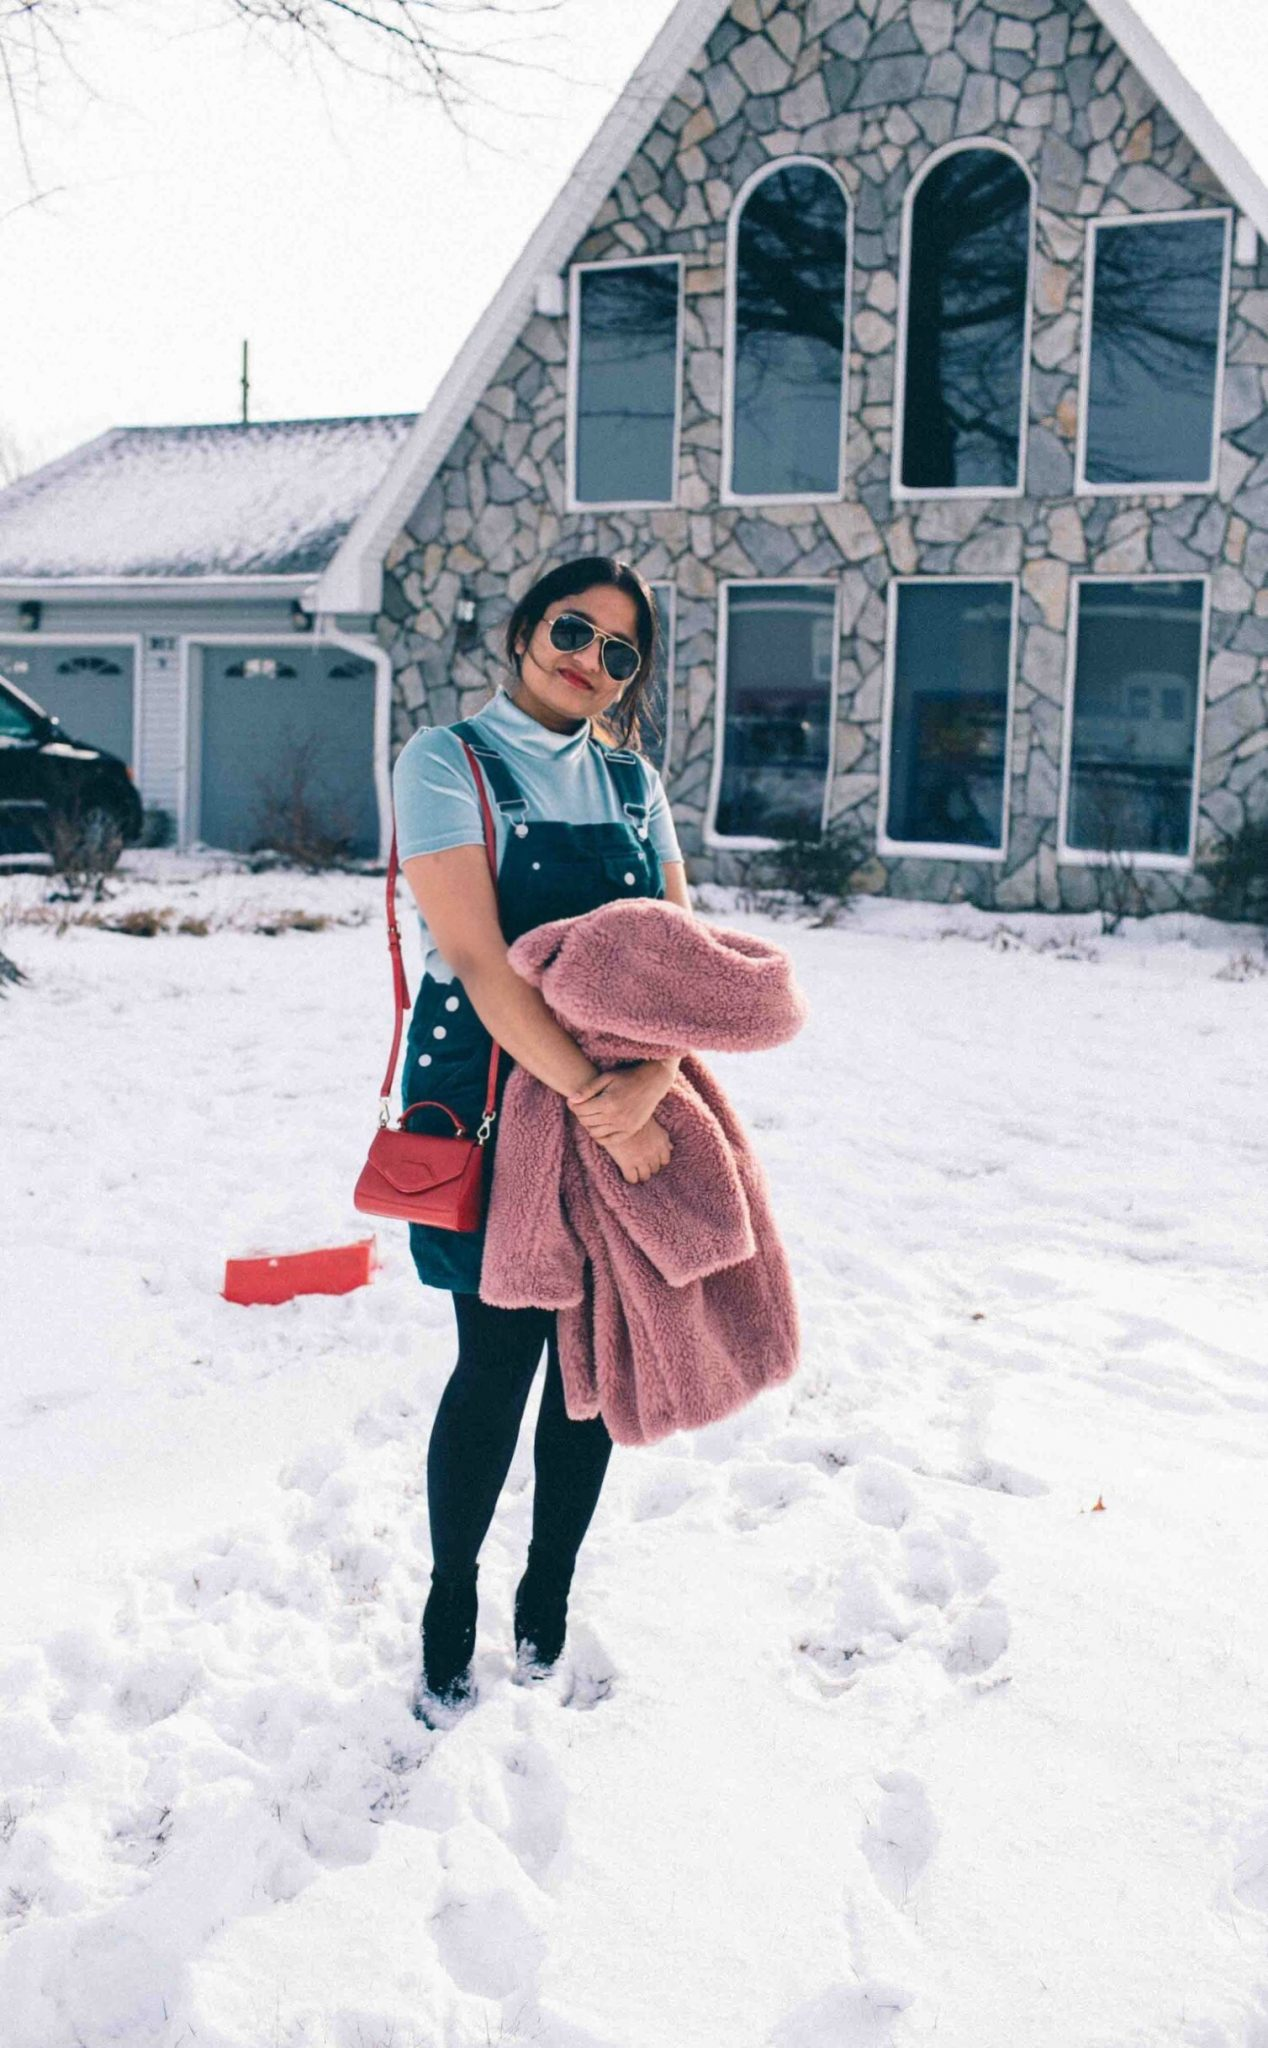 lifestyle blog dreaming loud wearing topshop faux fur teddy coat in blush or pink - Best of Presidents Day Sales featured by popular Ohio modest fashion blogger, Dreaming Loud